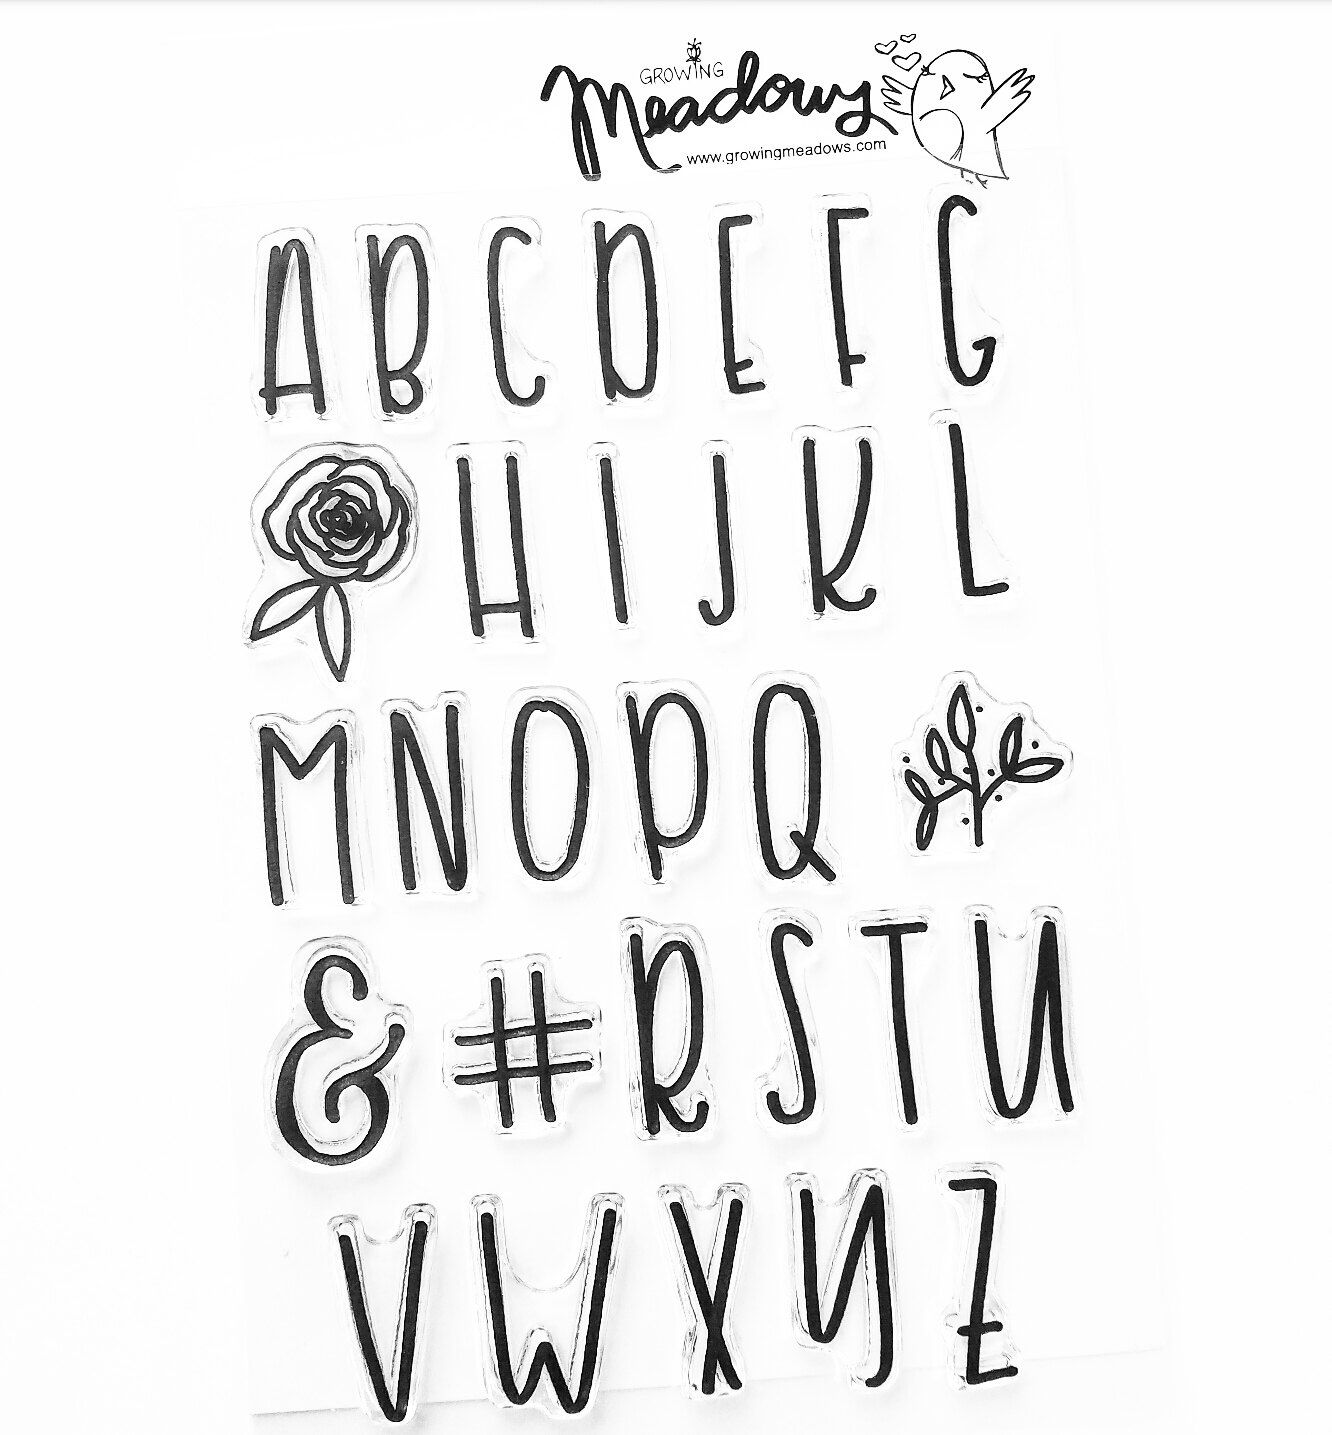 Courtneys Big Alpha Font Alphabet Stamp Set Faith Christian Stamps Scrapbooking Clear Bible Journaling 6x8 Growing Meadows Tai Bender By GrowingMeadows On